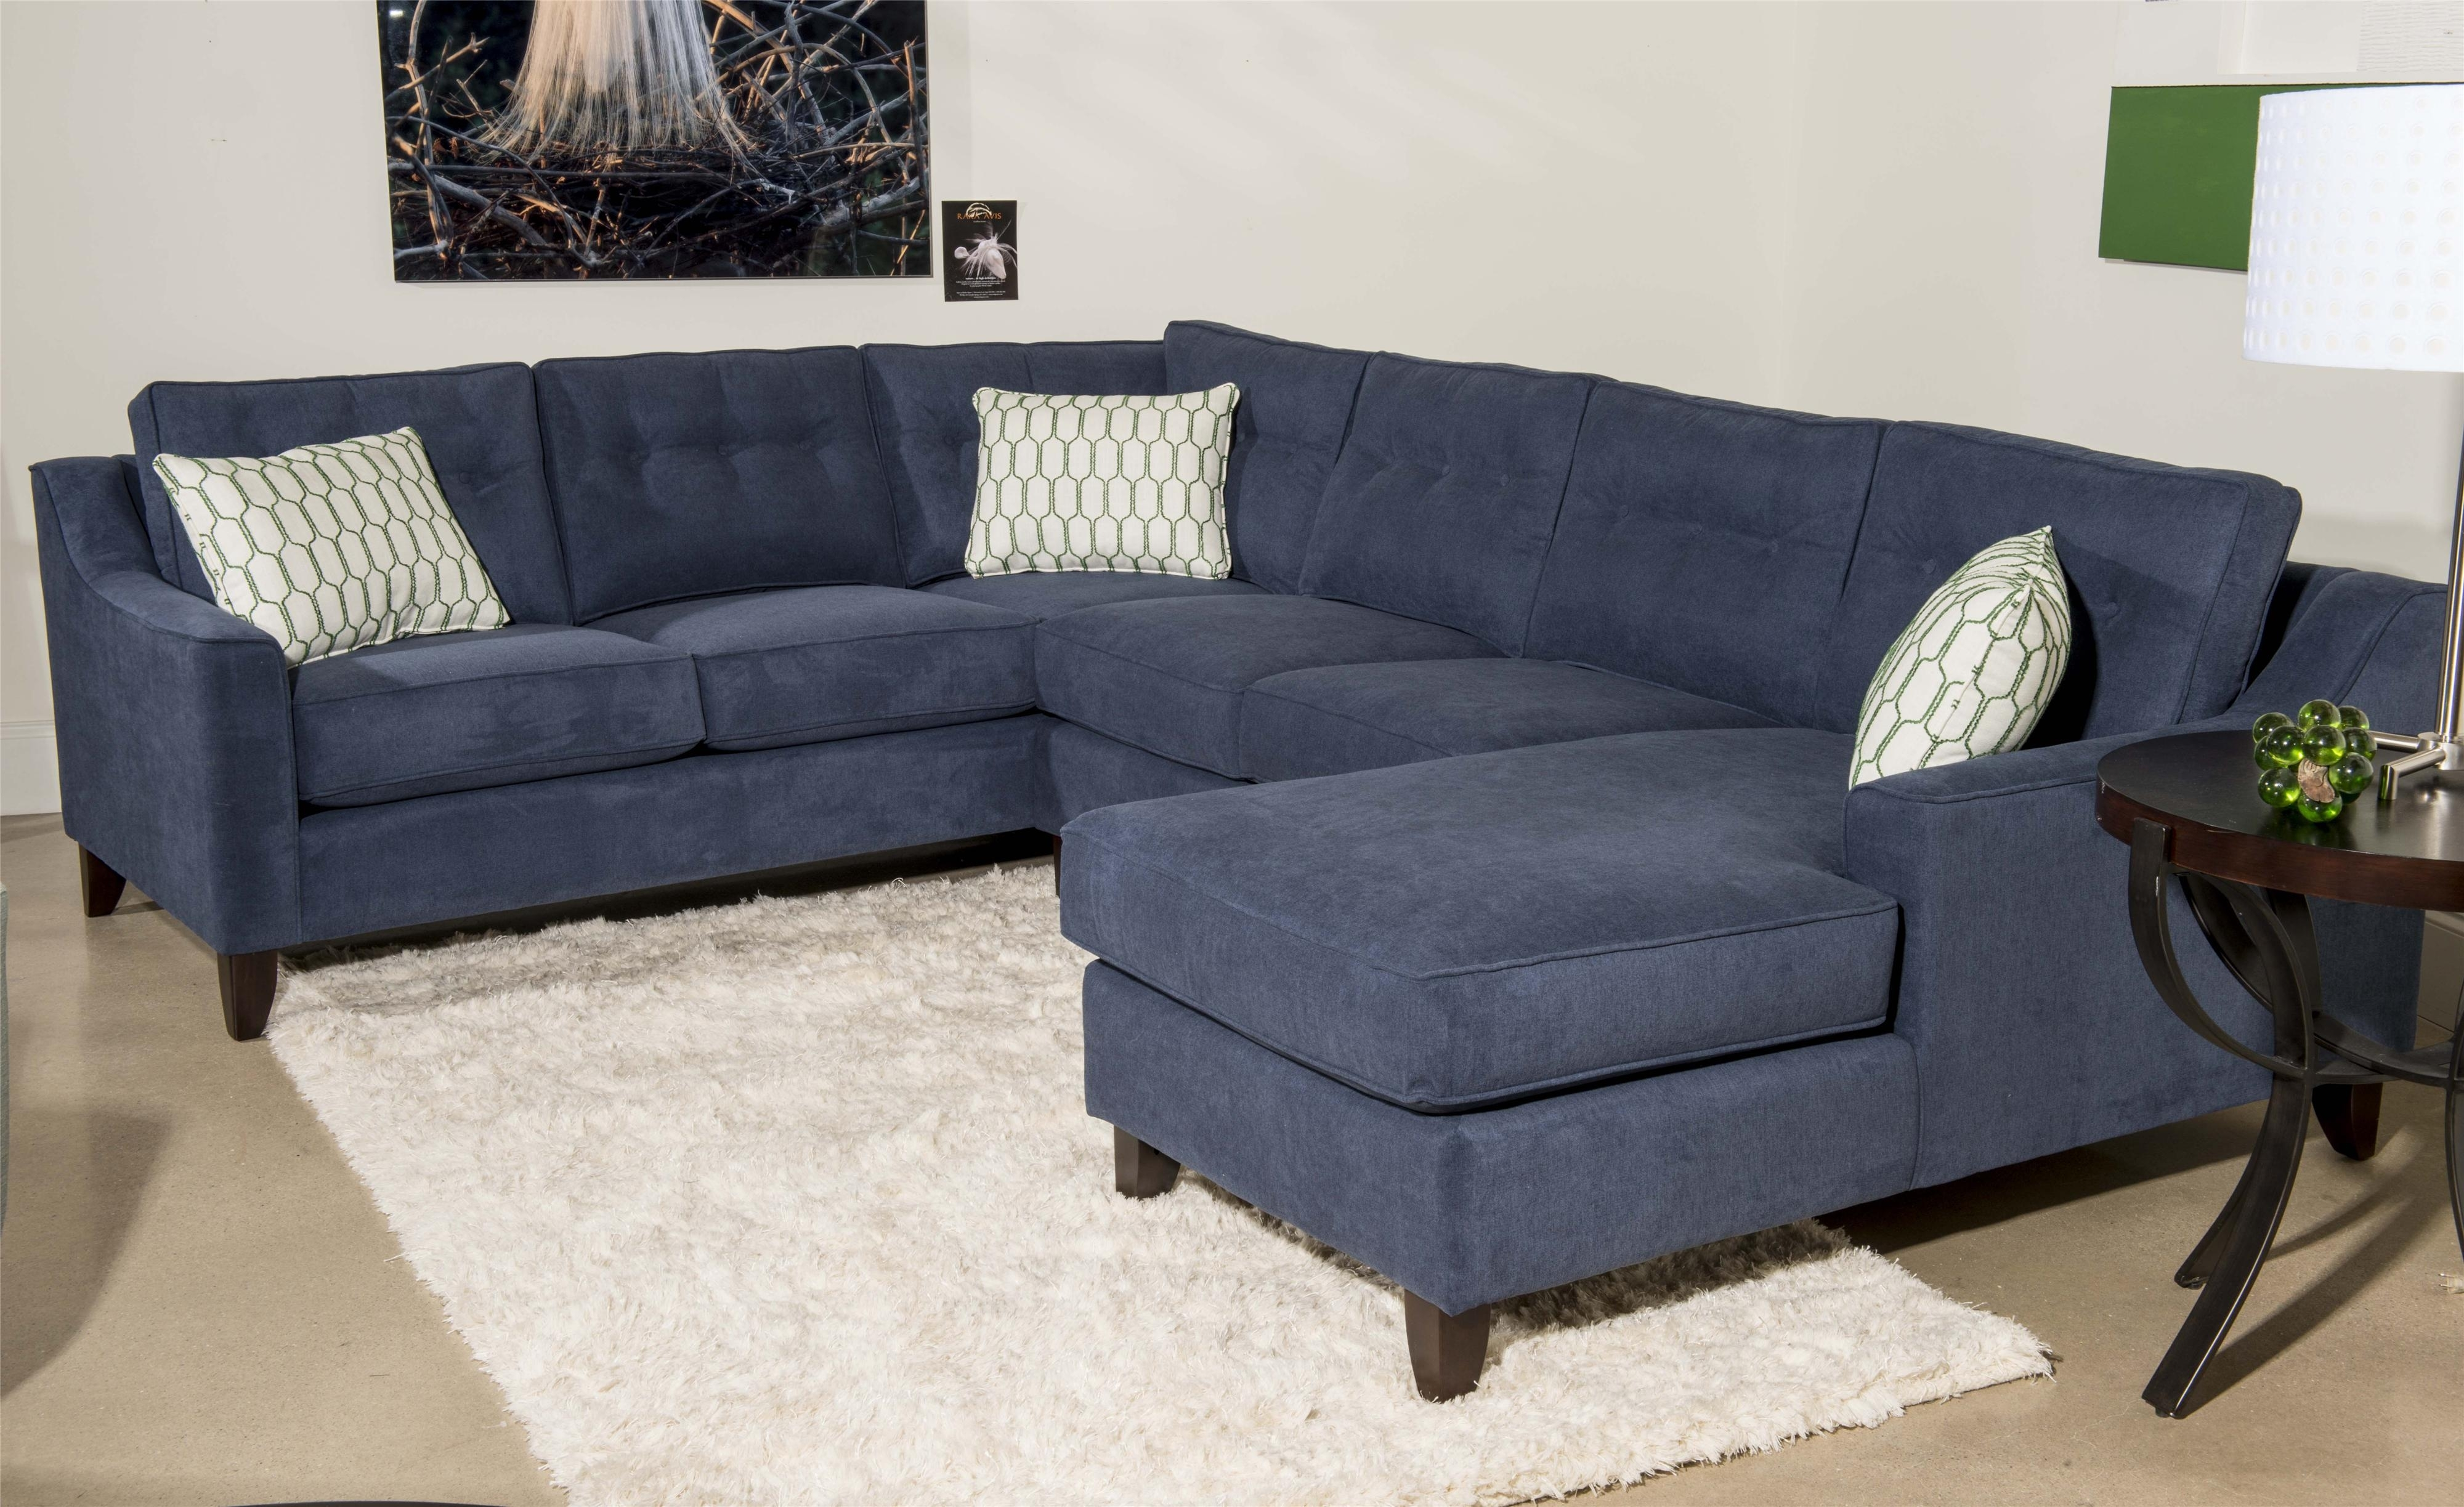 Klaussner Audrina Contemporary 3 Piece Sectional Sofa With Chaise For Sectional Sofas With Chaise (View 7 of 15)